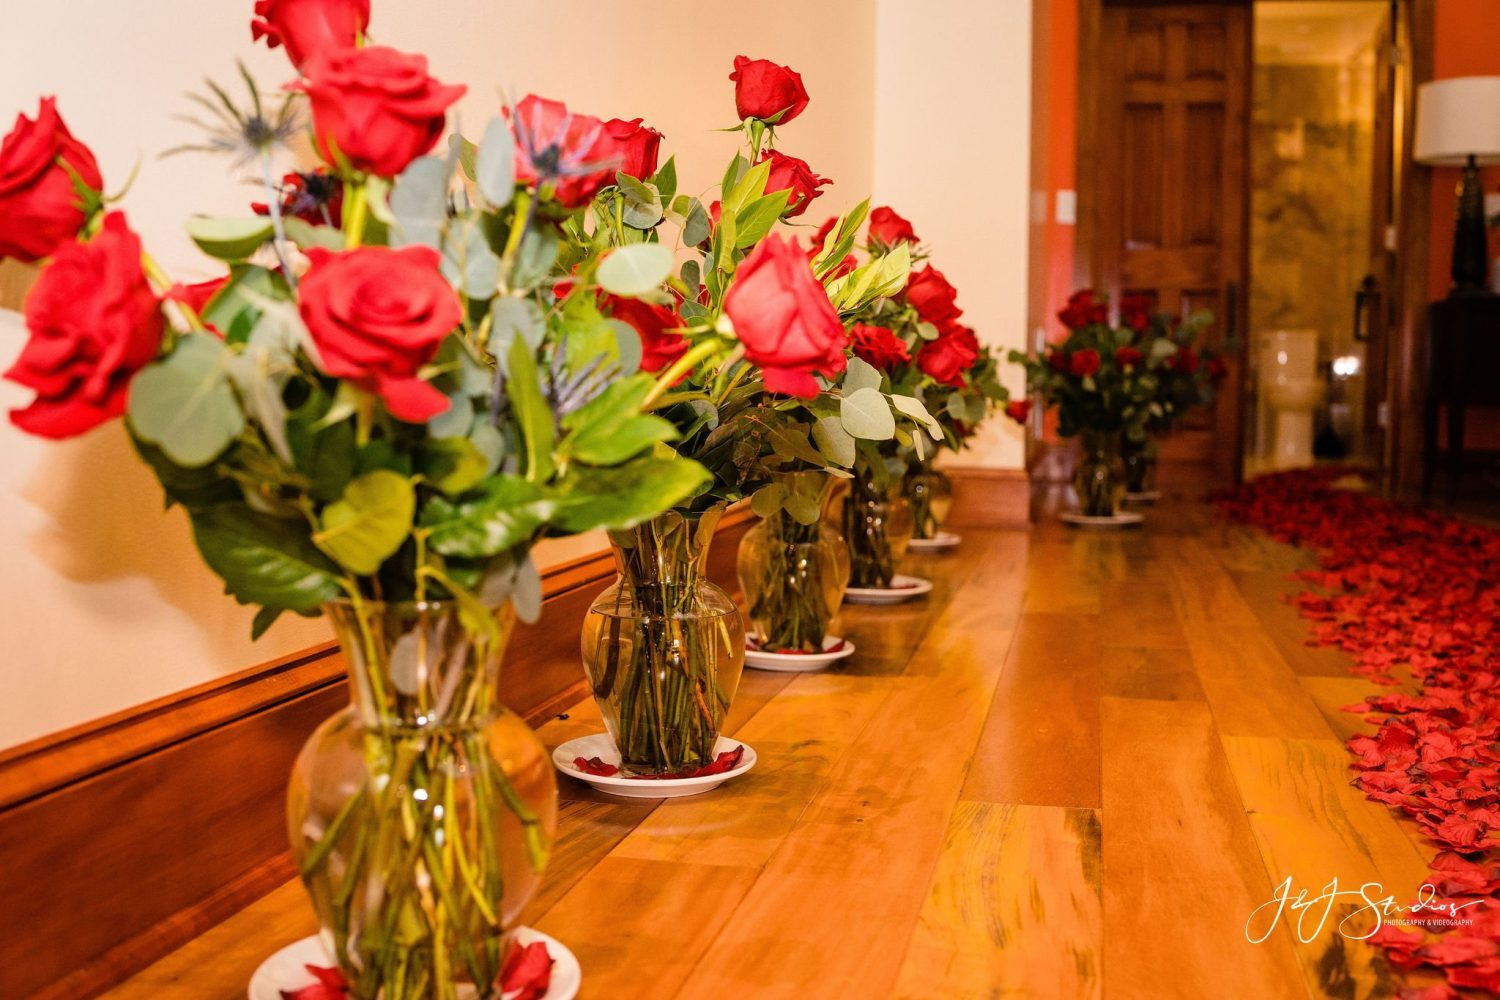 rose bouquets in vases on floor